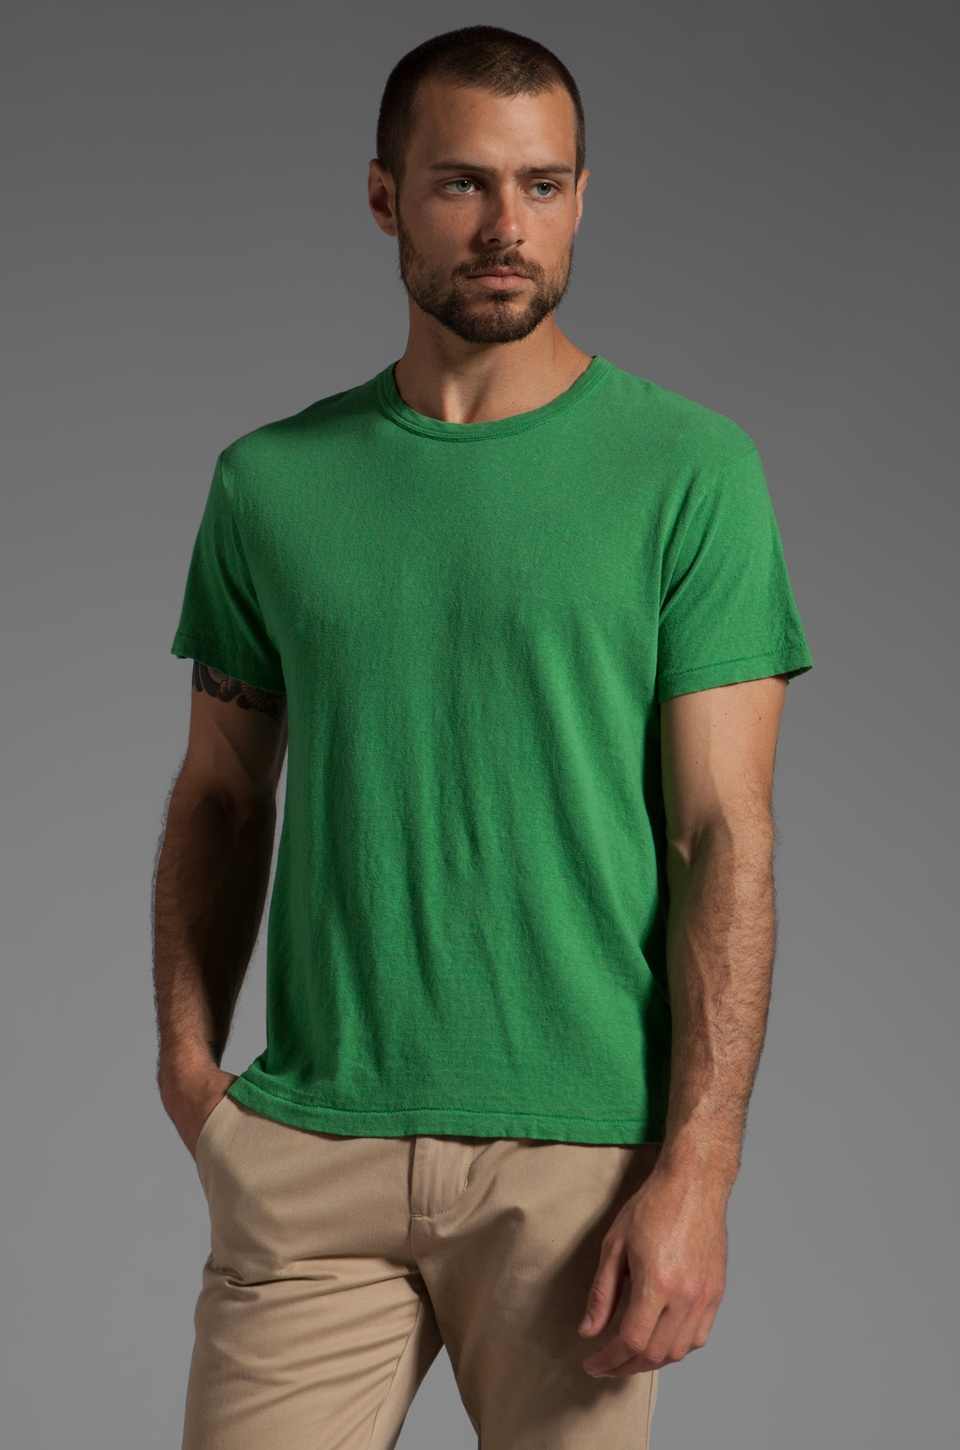 TODD SNYDER Classic T in Kelly Green